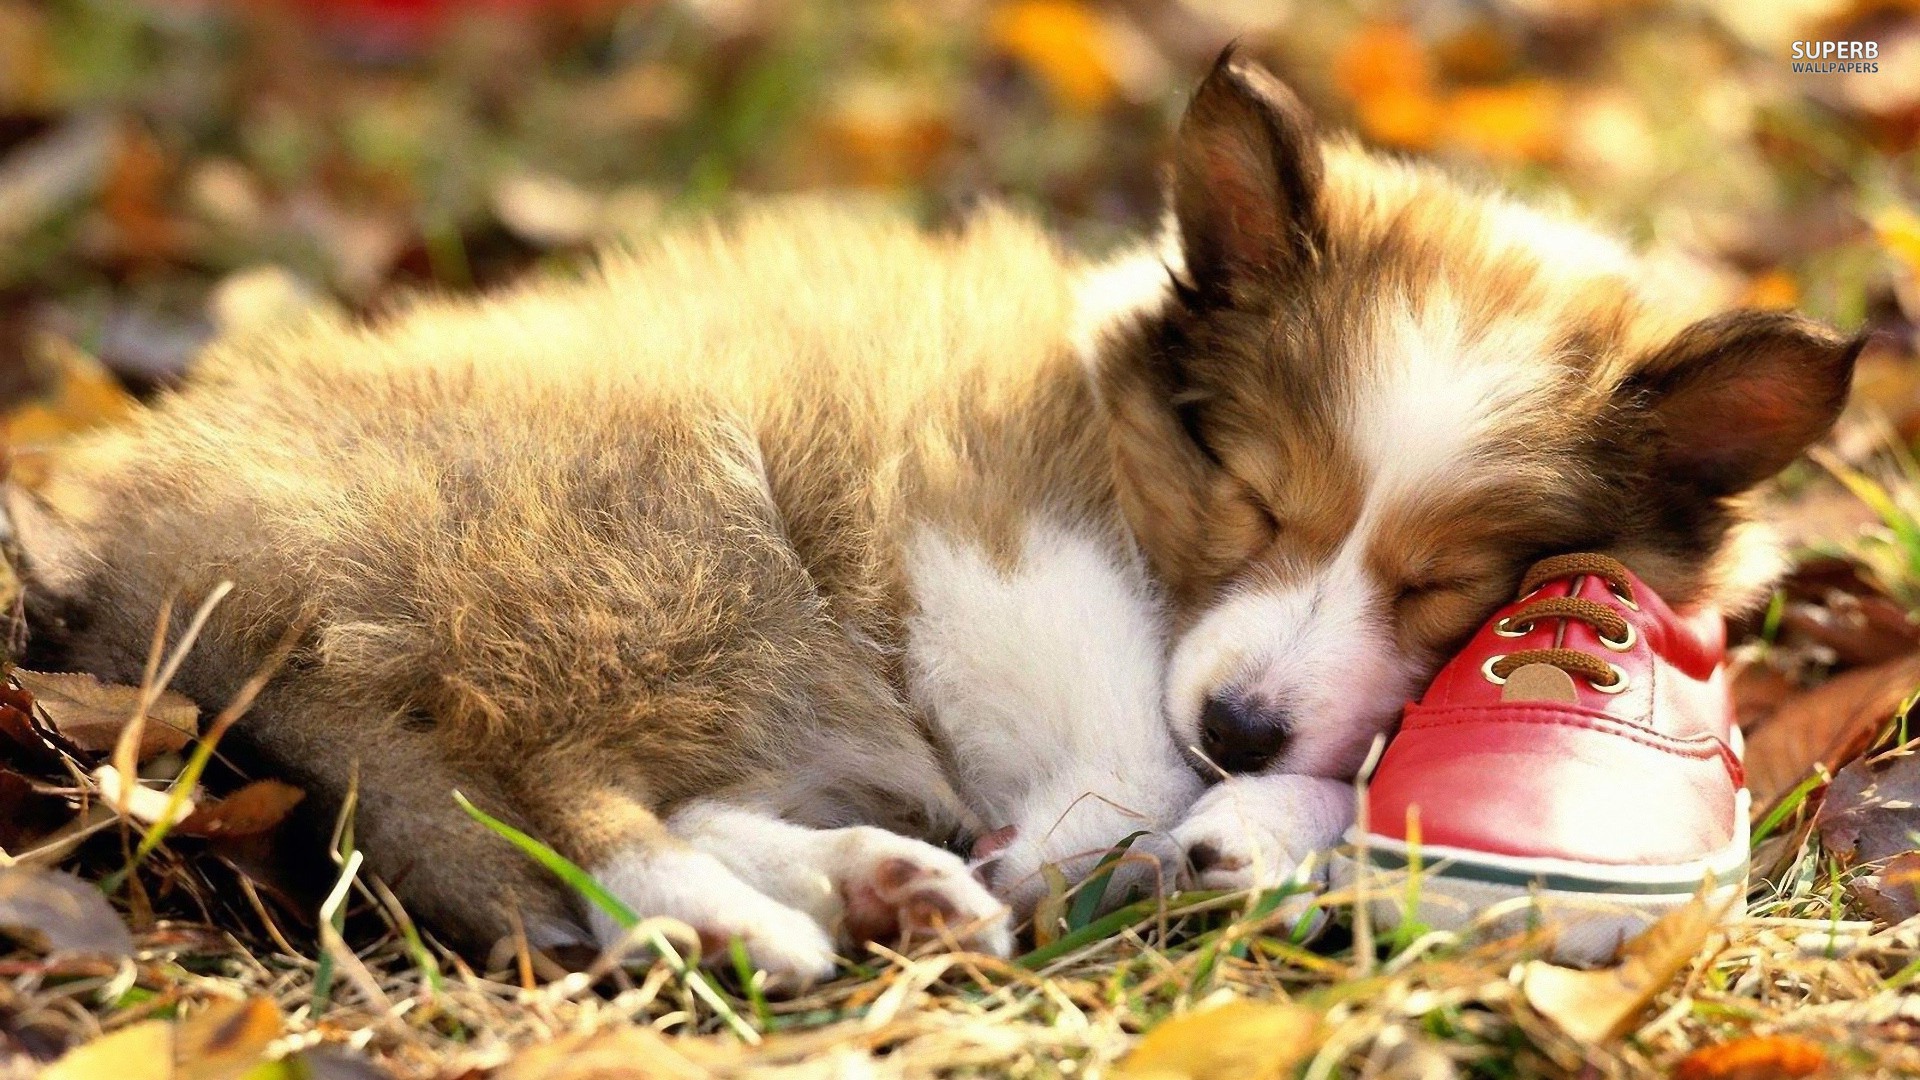 Cute Puppies Wallpapers For Mobile Puppy Wallpapers For Desktop 67 Images